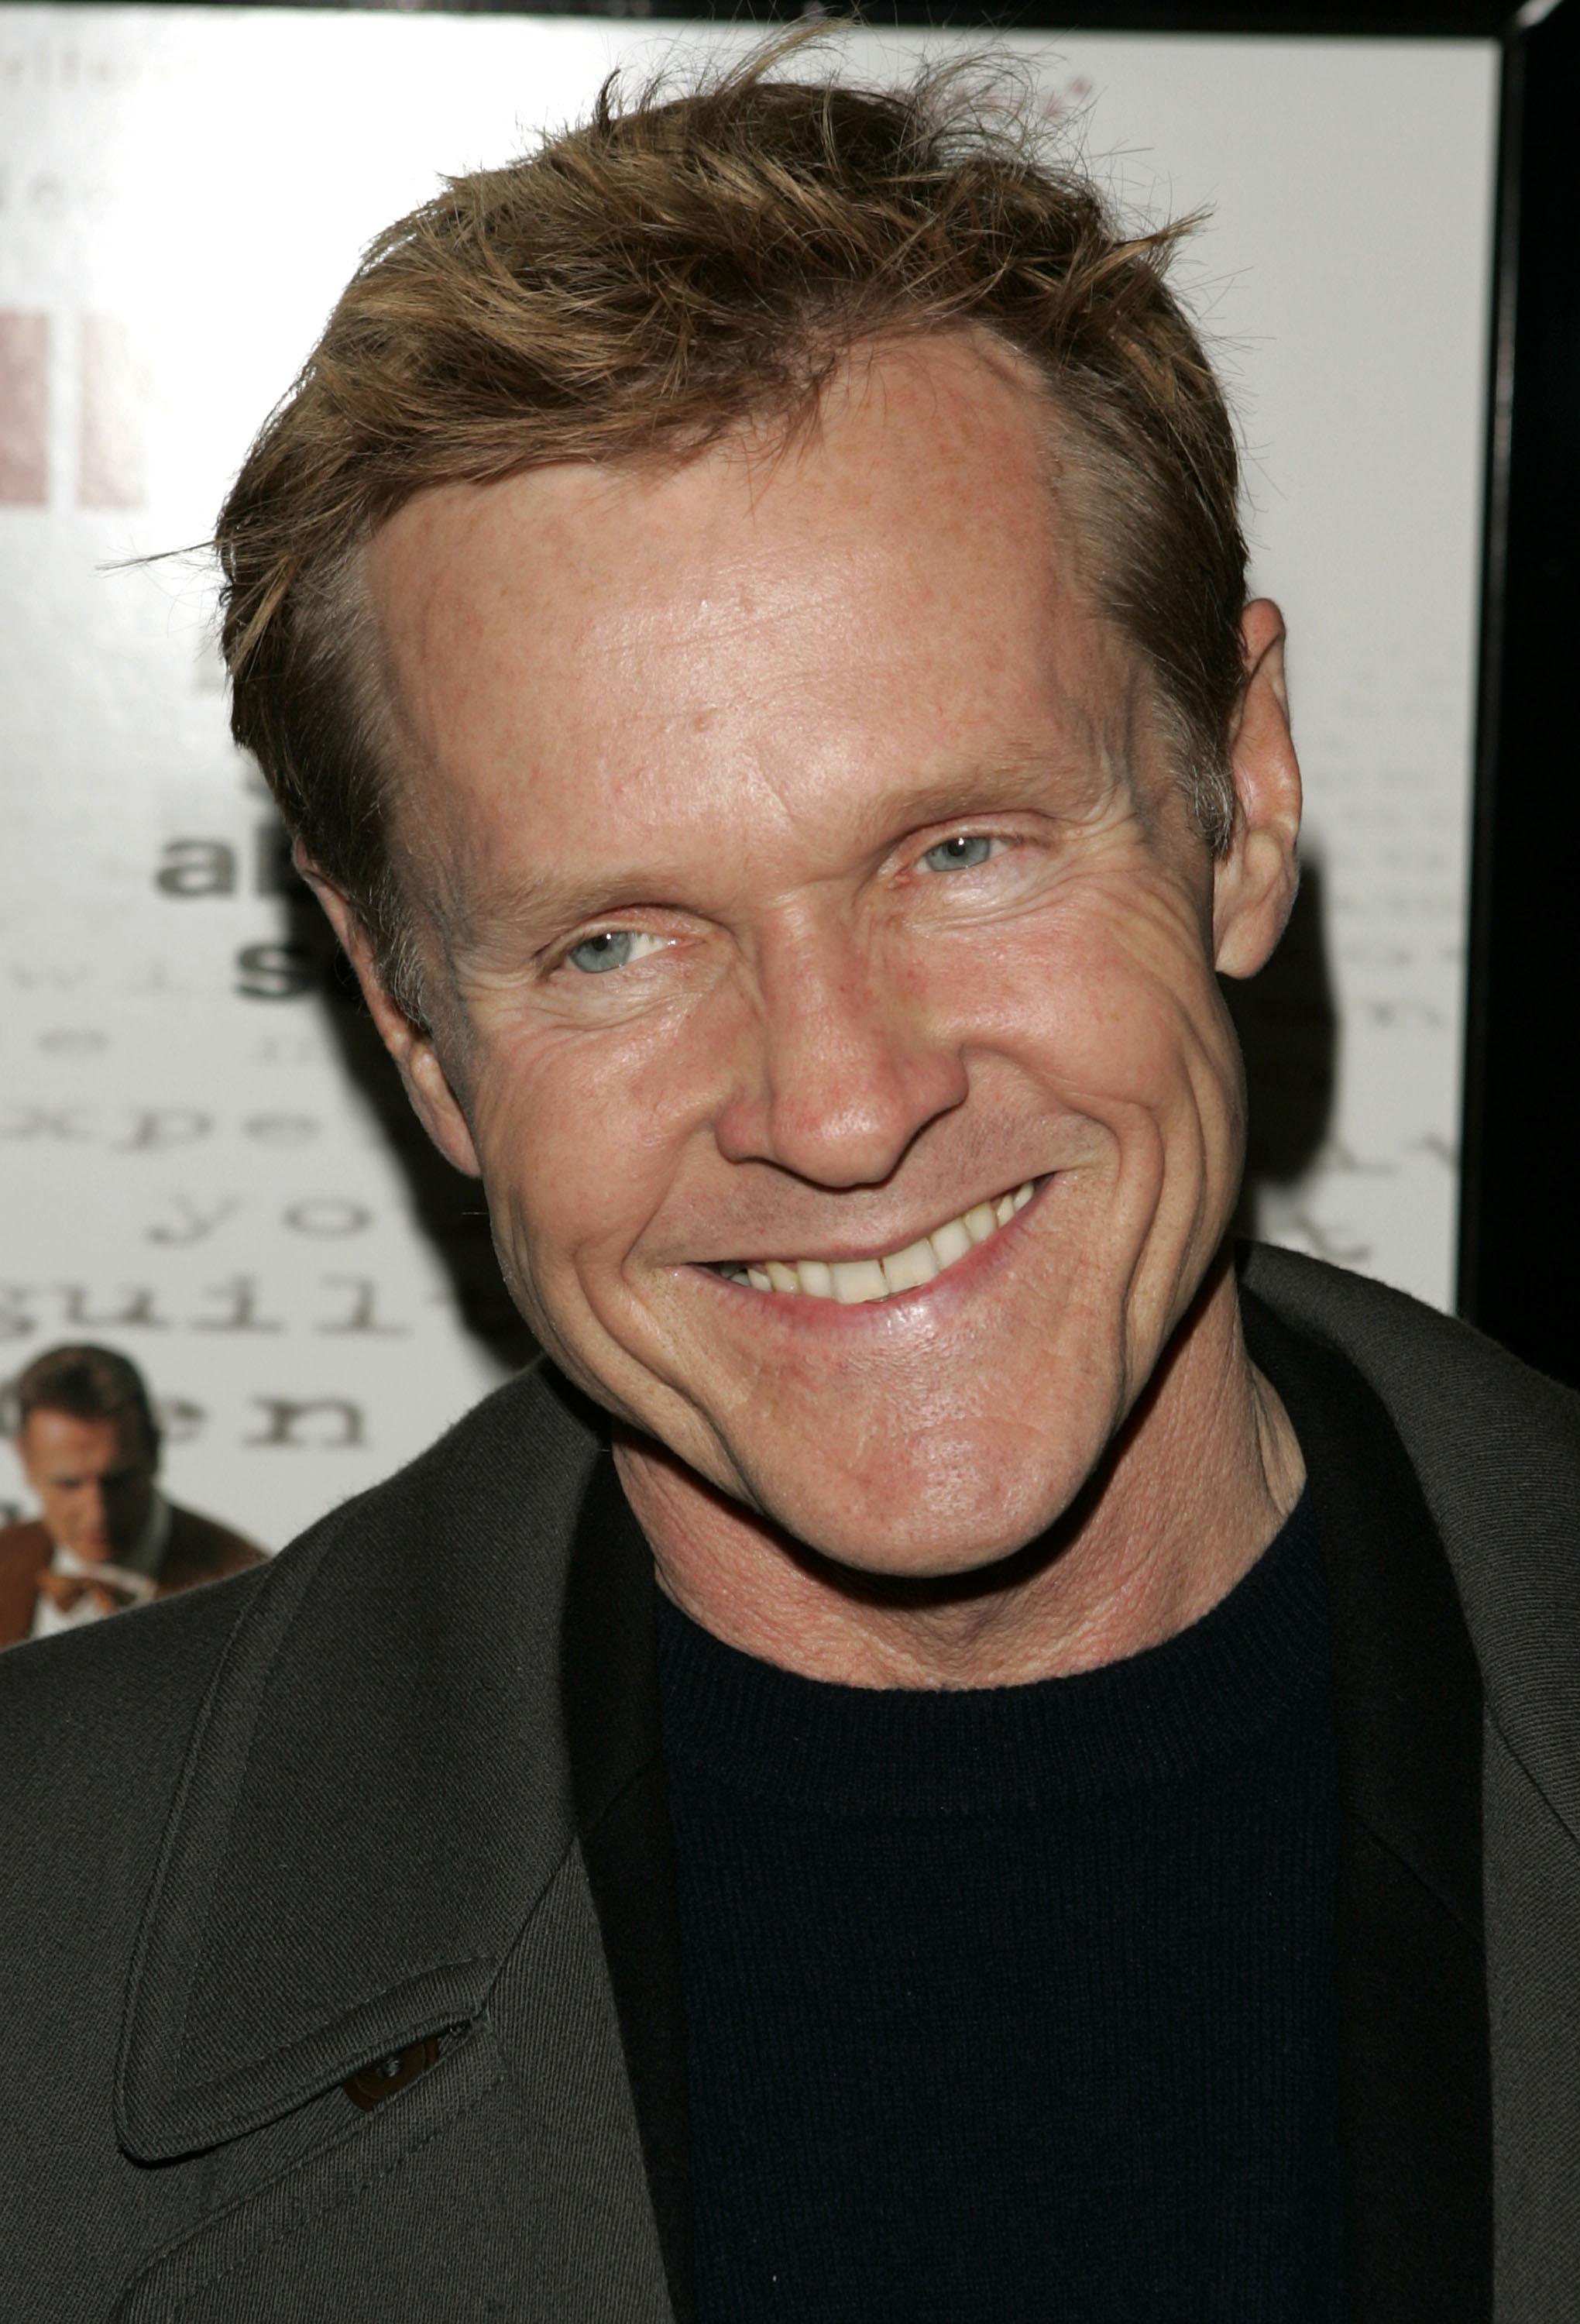 Pictures Of William Sadler Actor Pictures Of Celebrities